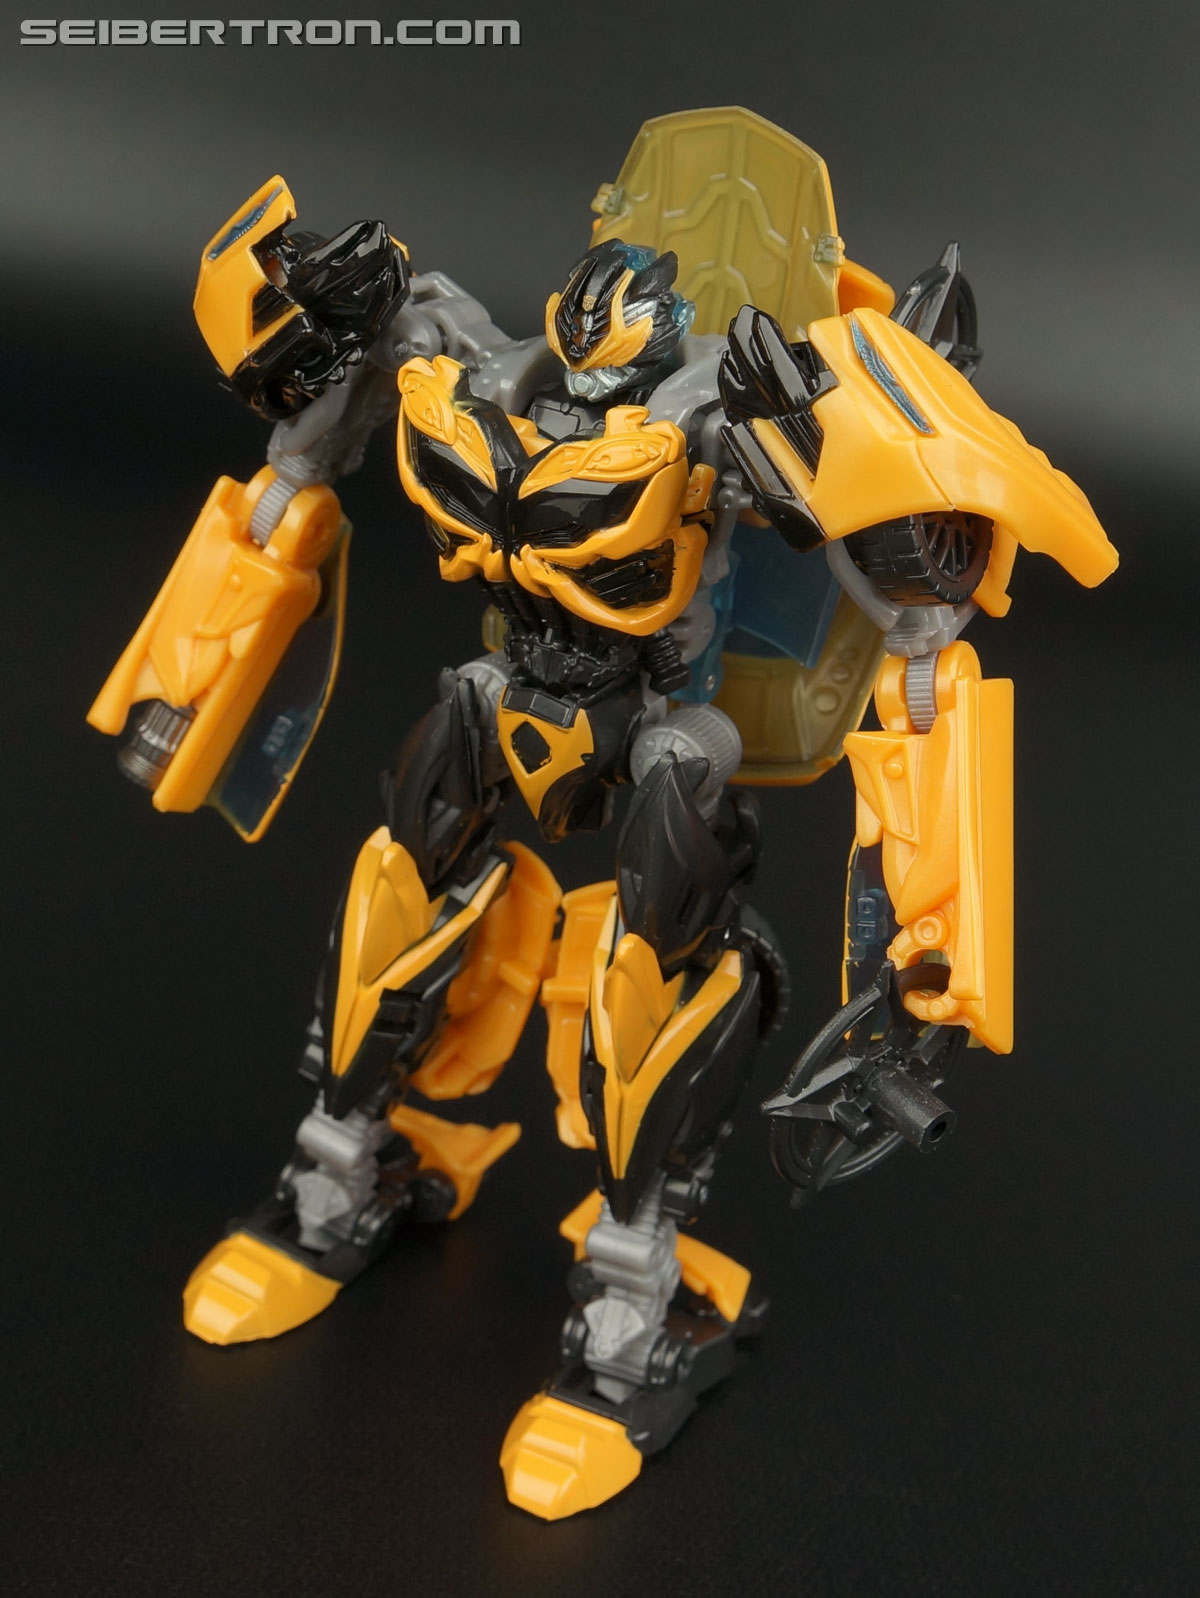 Transformers Age of Extinction: Generations Bumblebee (Image #96 of 190)